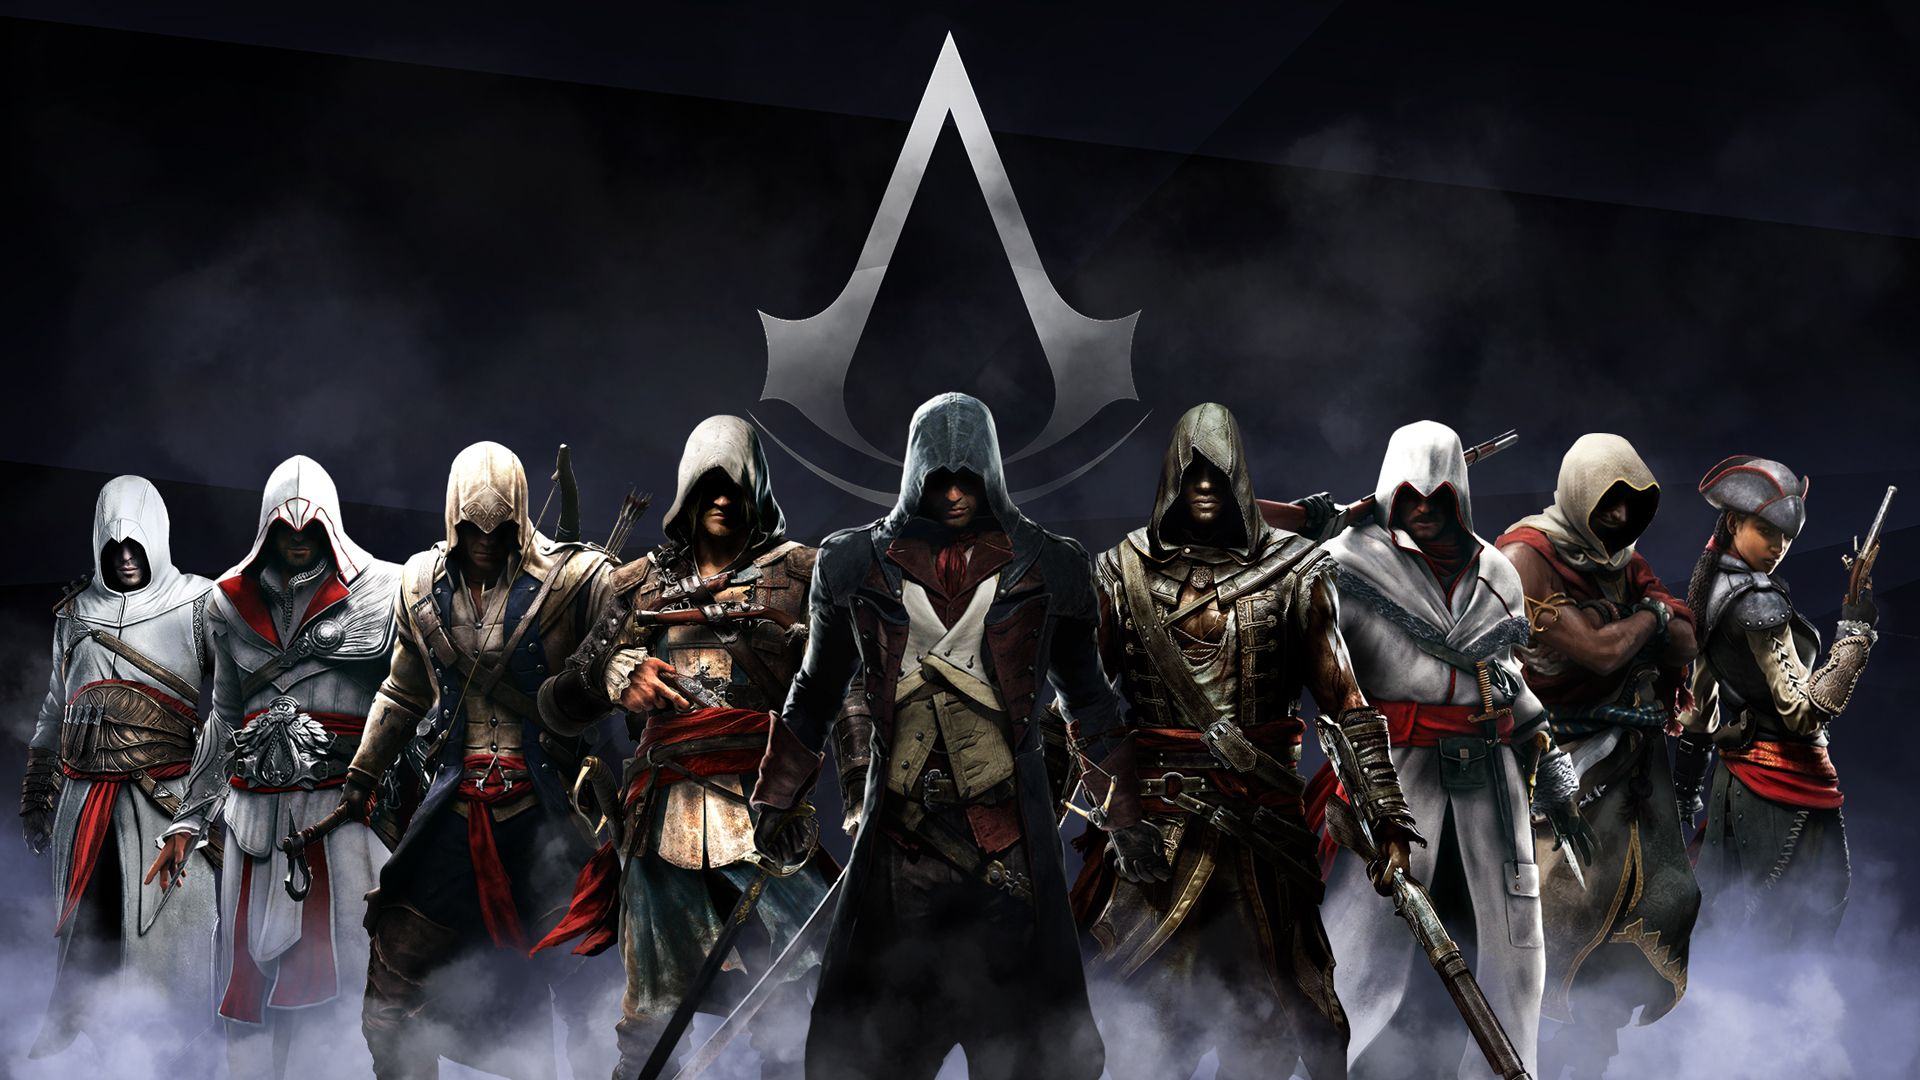 Assassin's Creed-Spiele für Android